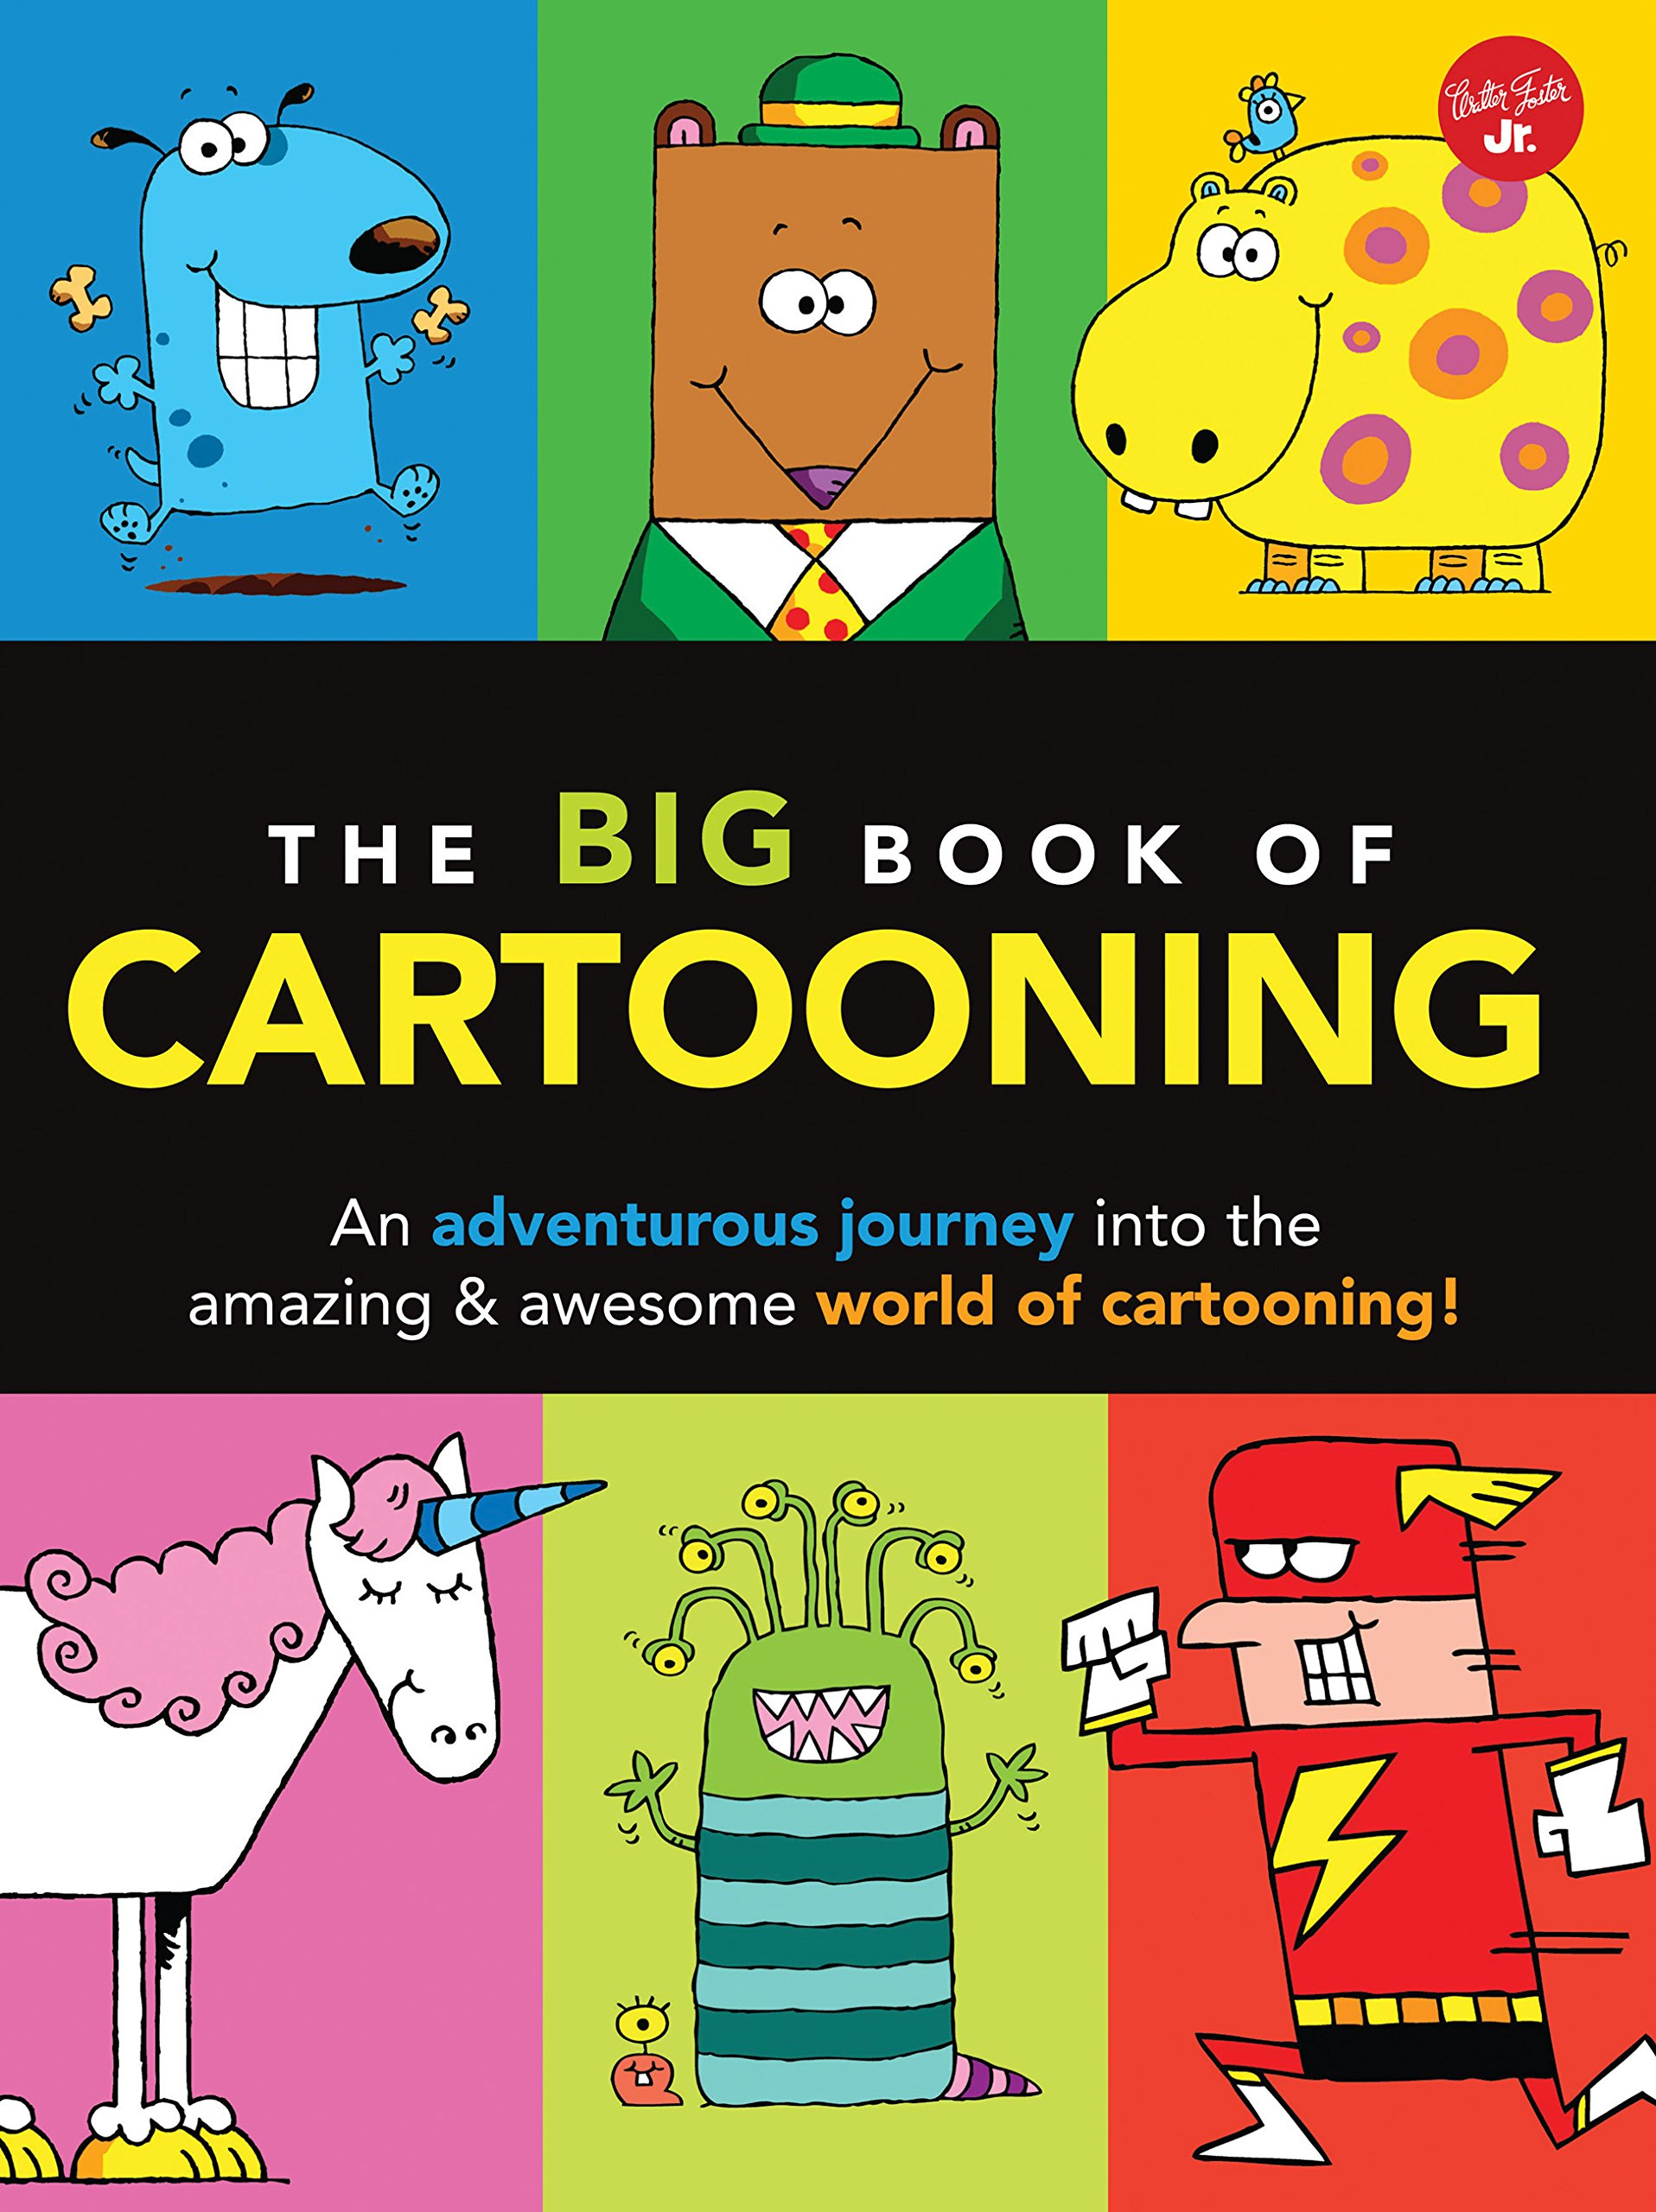 The Big Book of Cartooning: An adventurous journey into the amazing & awesome world of cartooning! (Big Book Series)